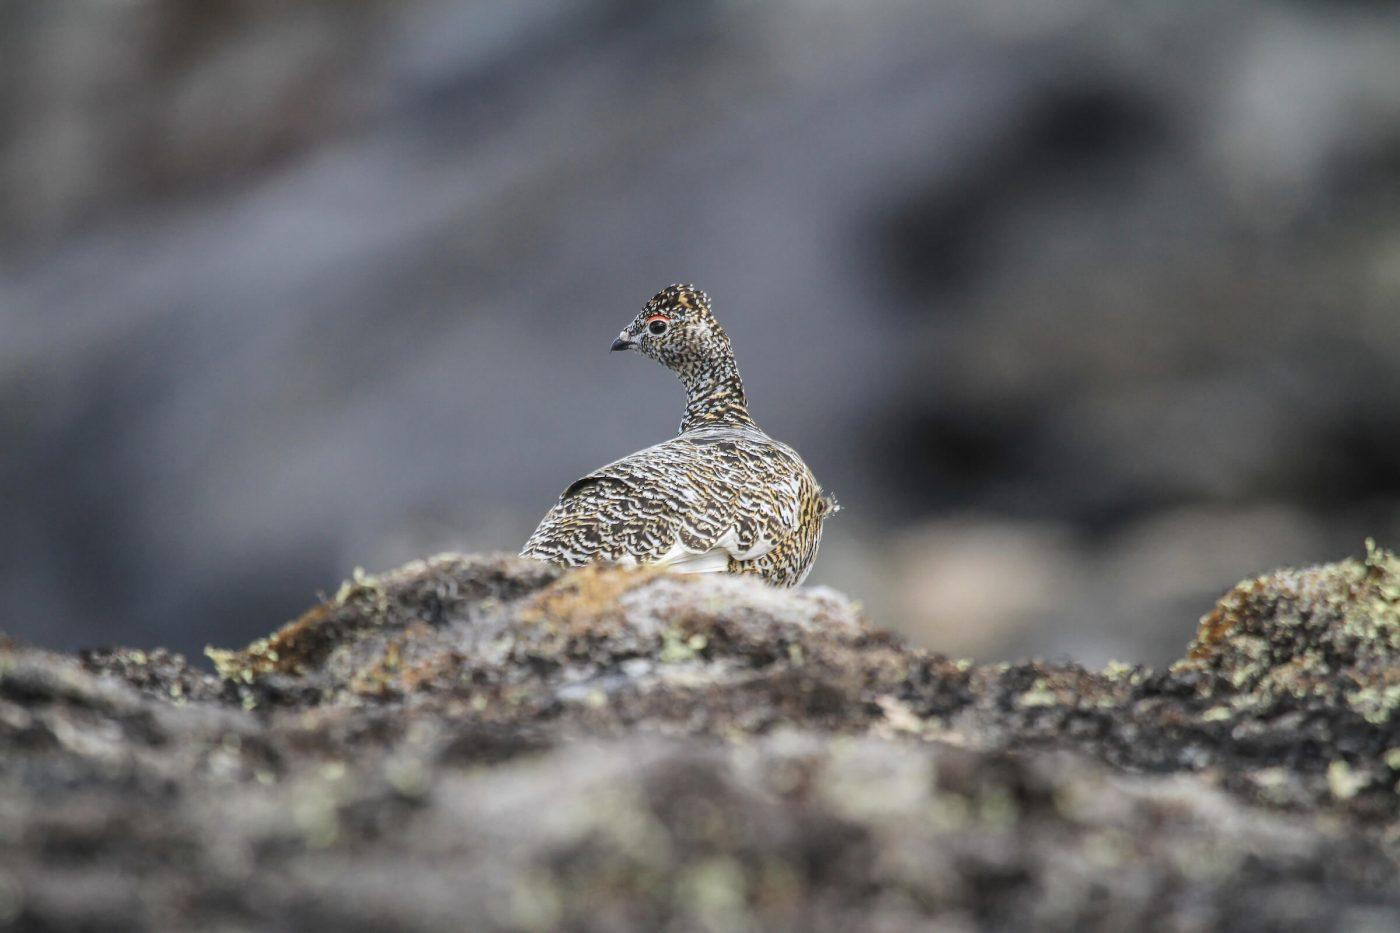 Ptarmigan among rocks. Photo by Tikki Geisler